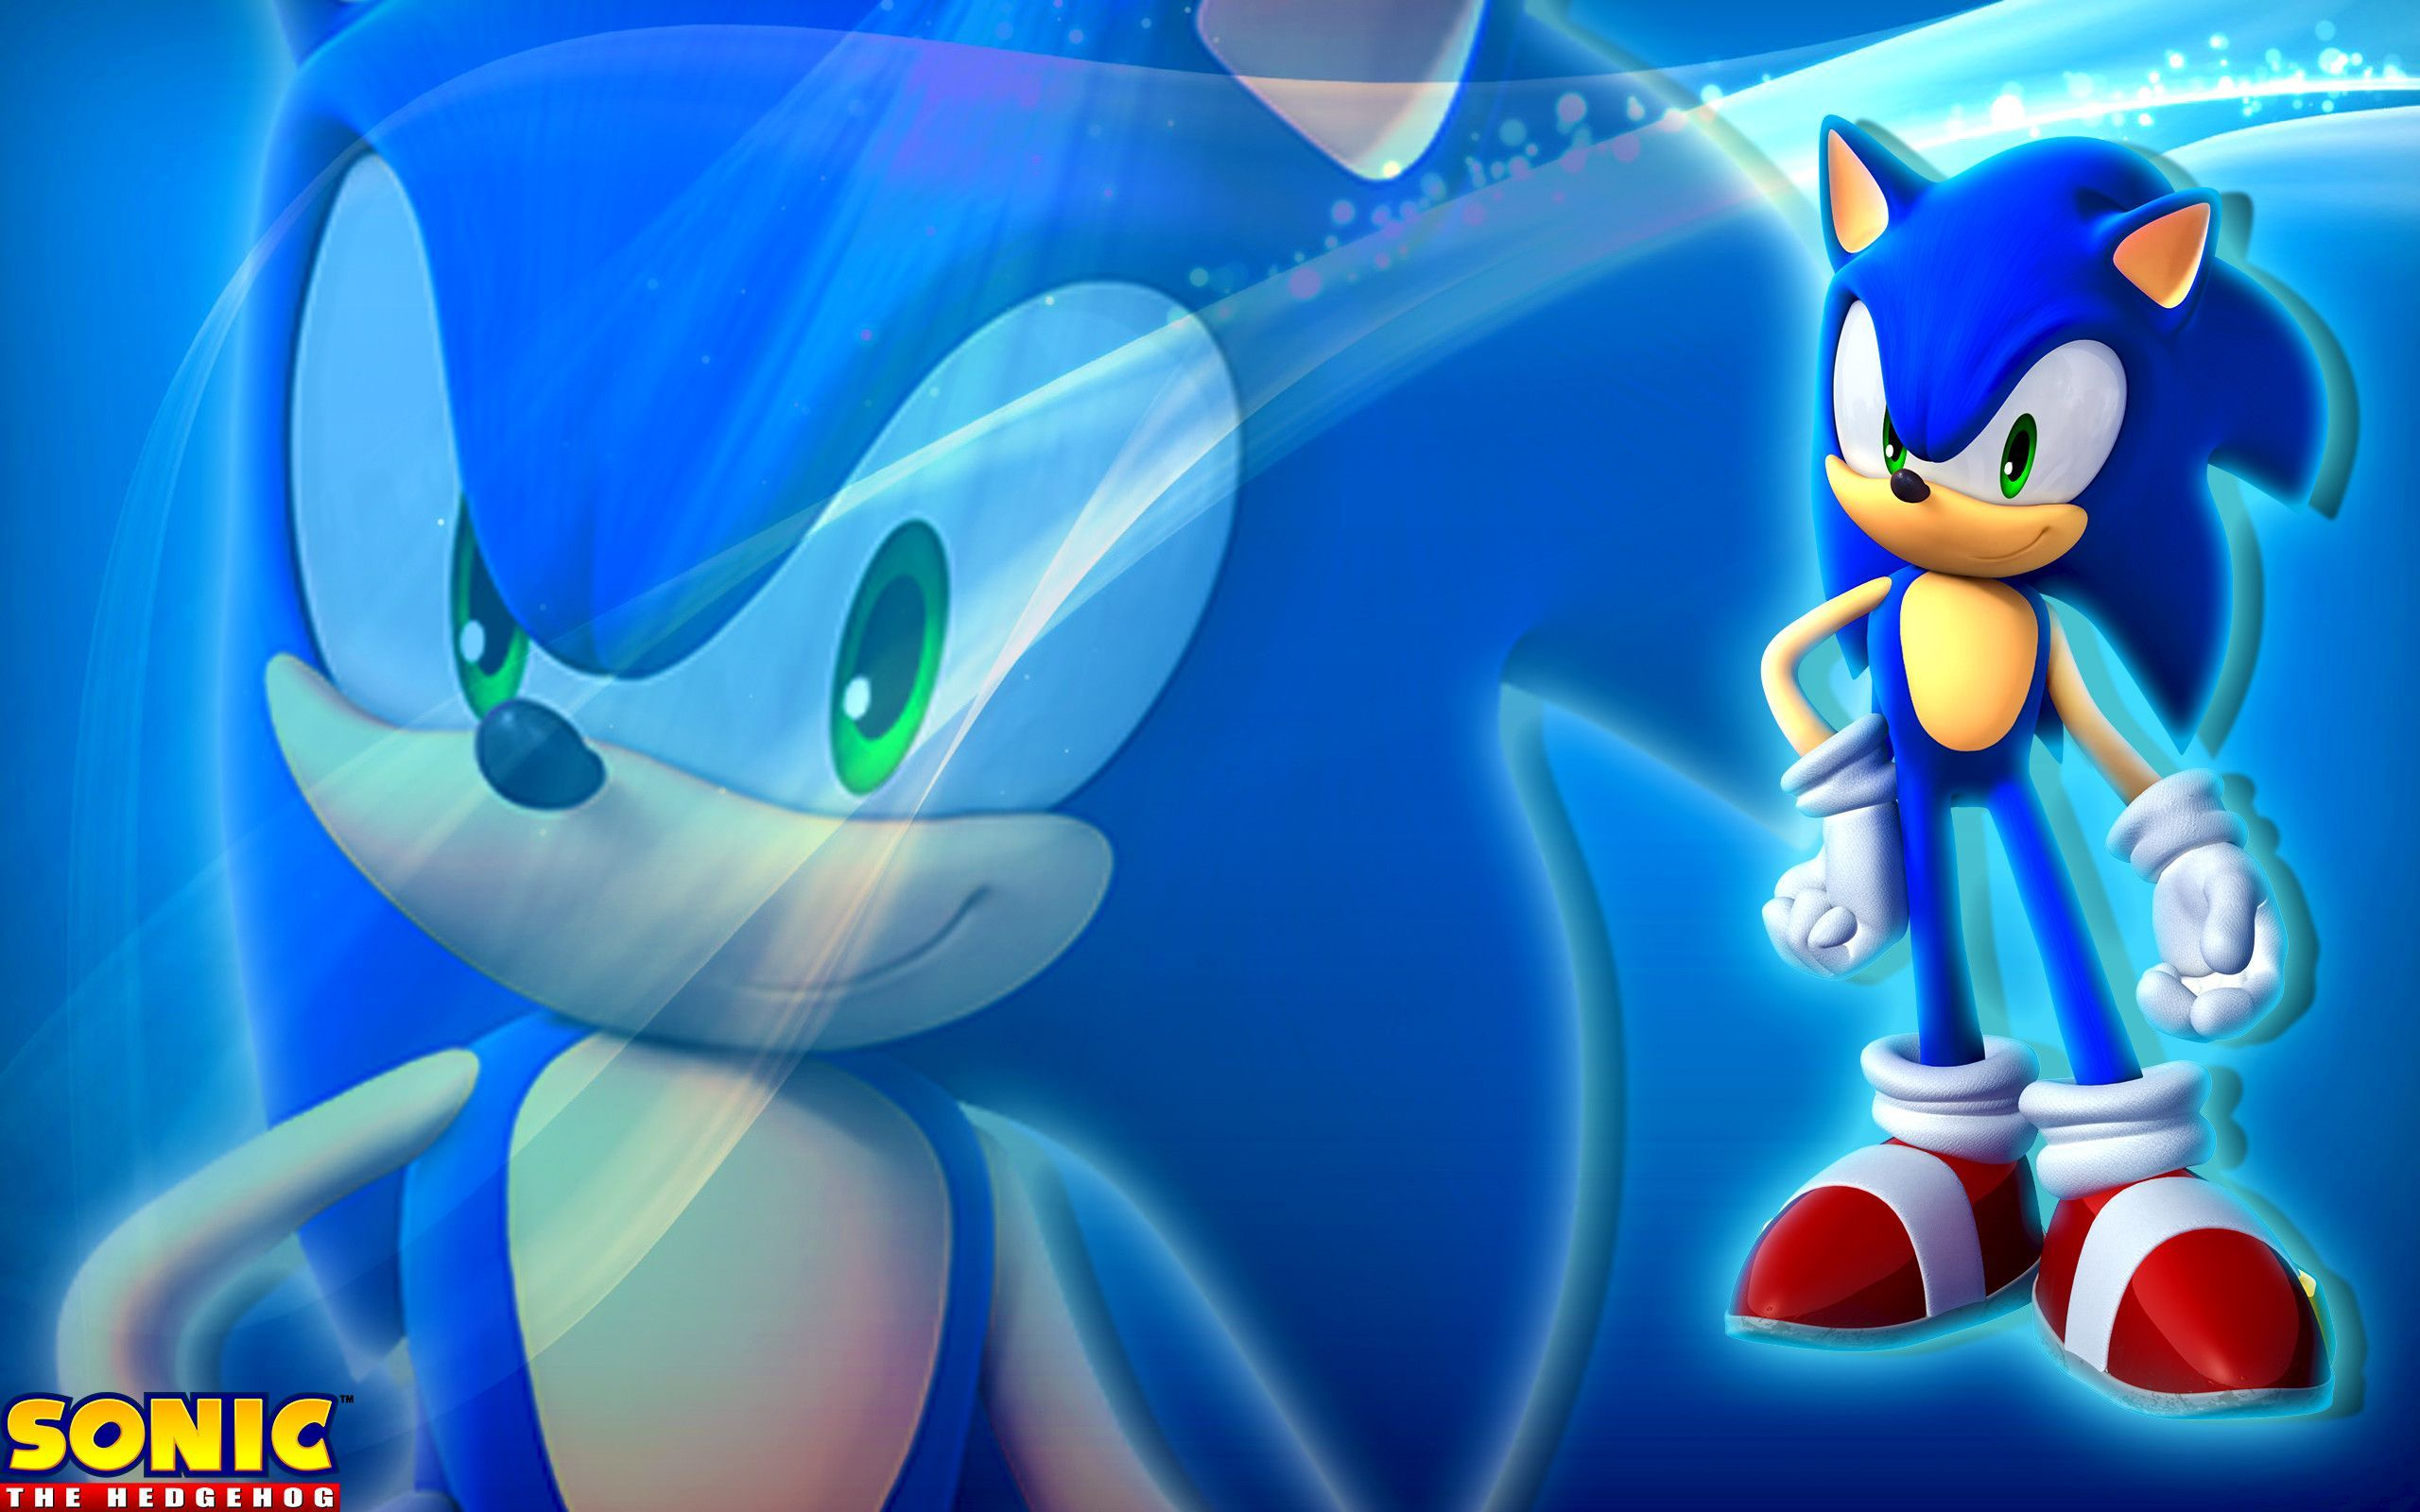 Sonic The Hedgehog Wallpaper HD Background Wallpaper